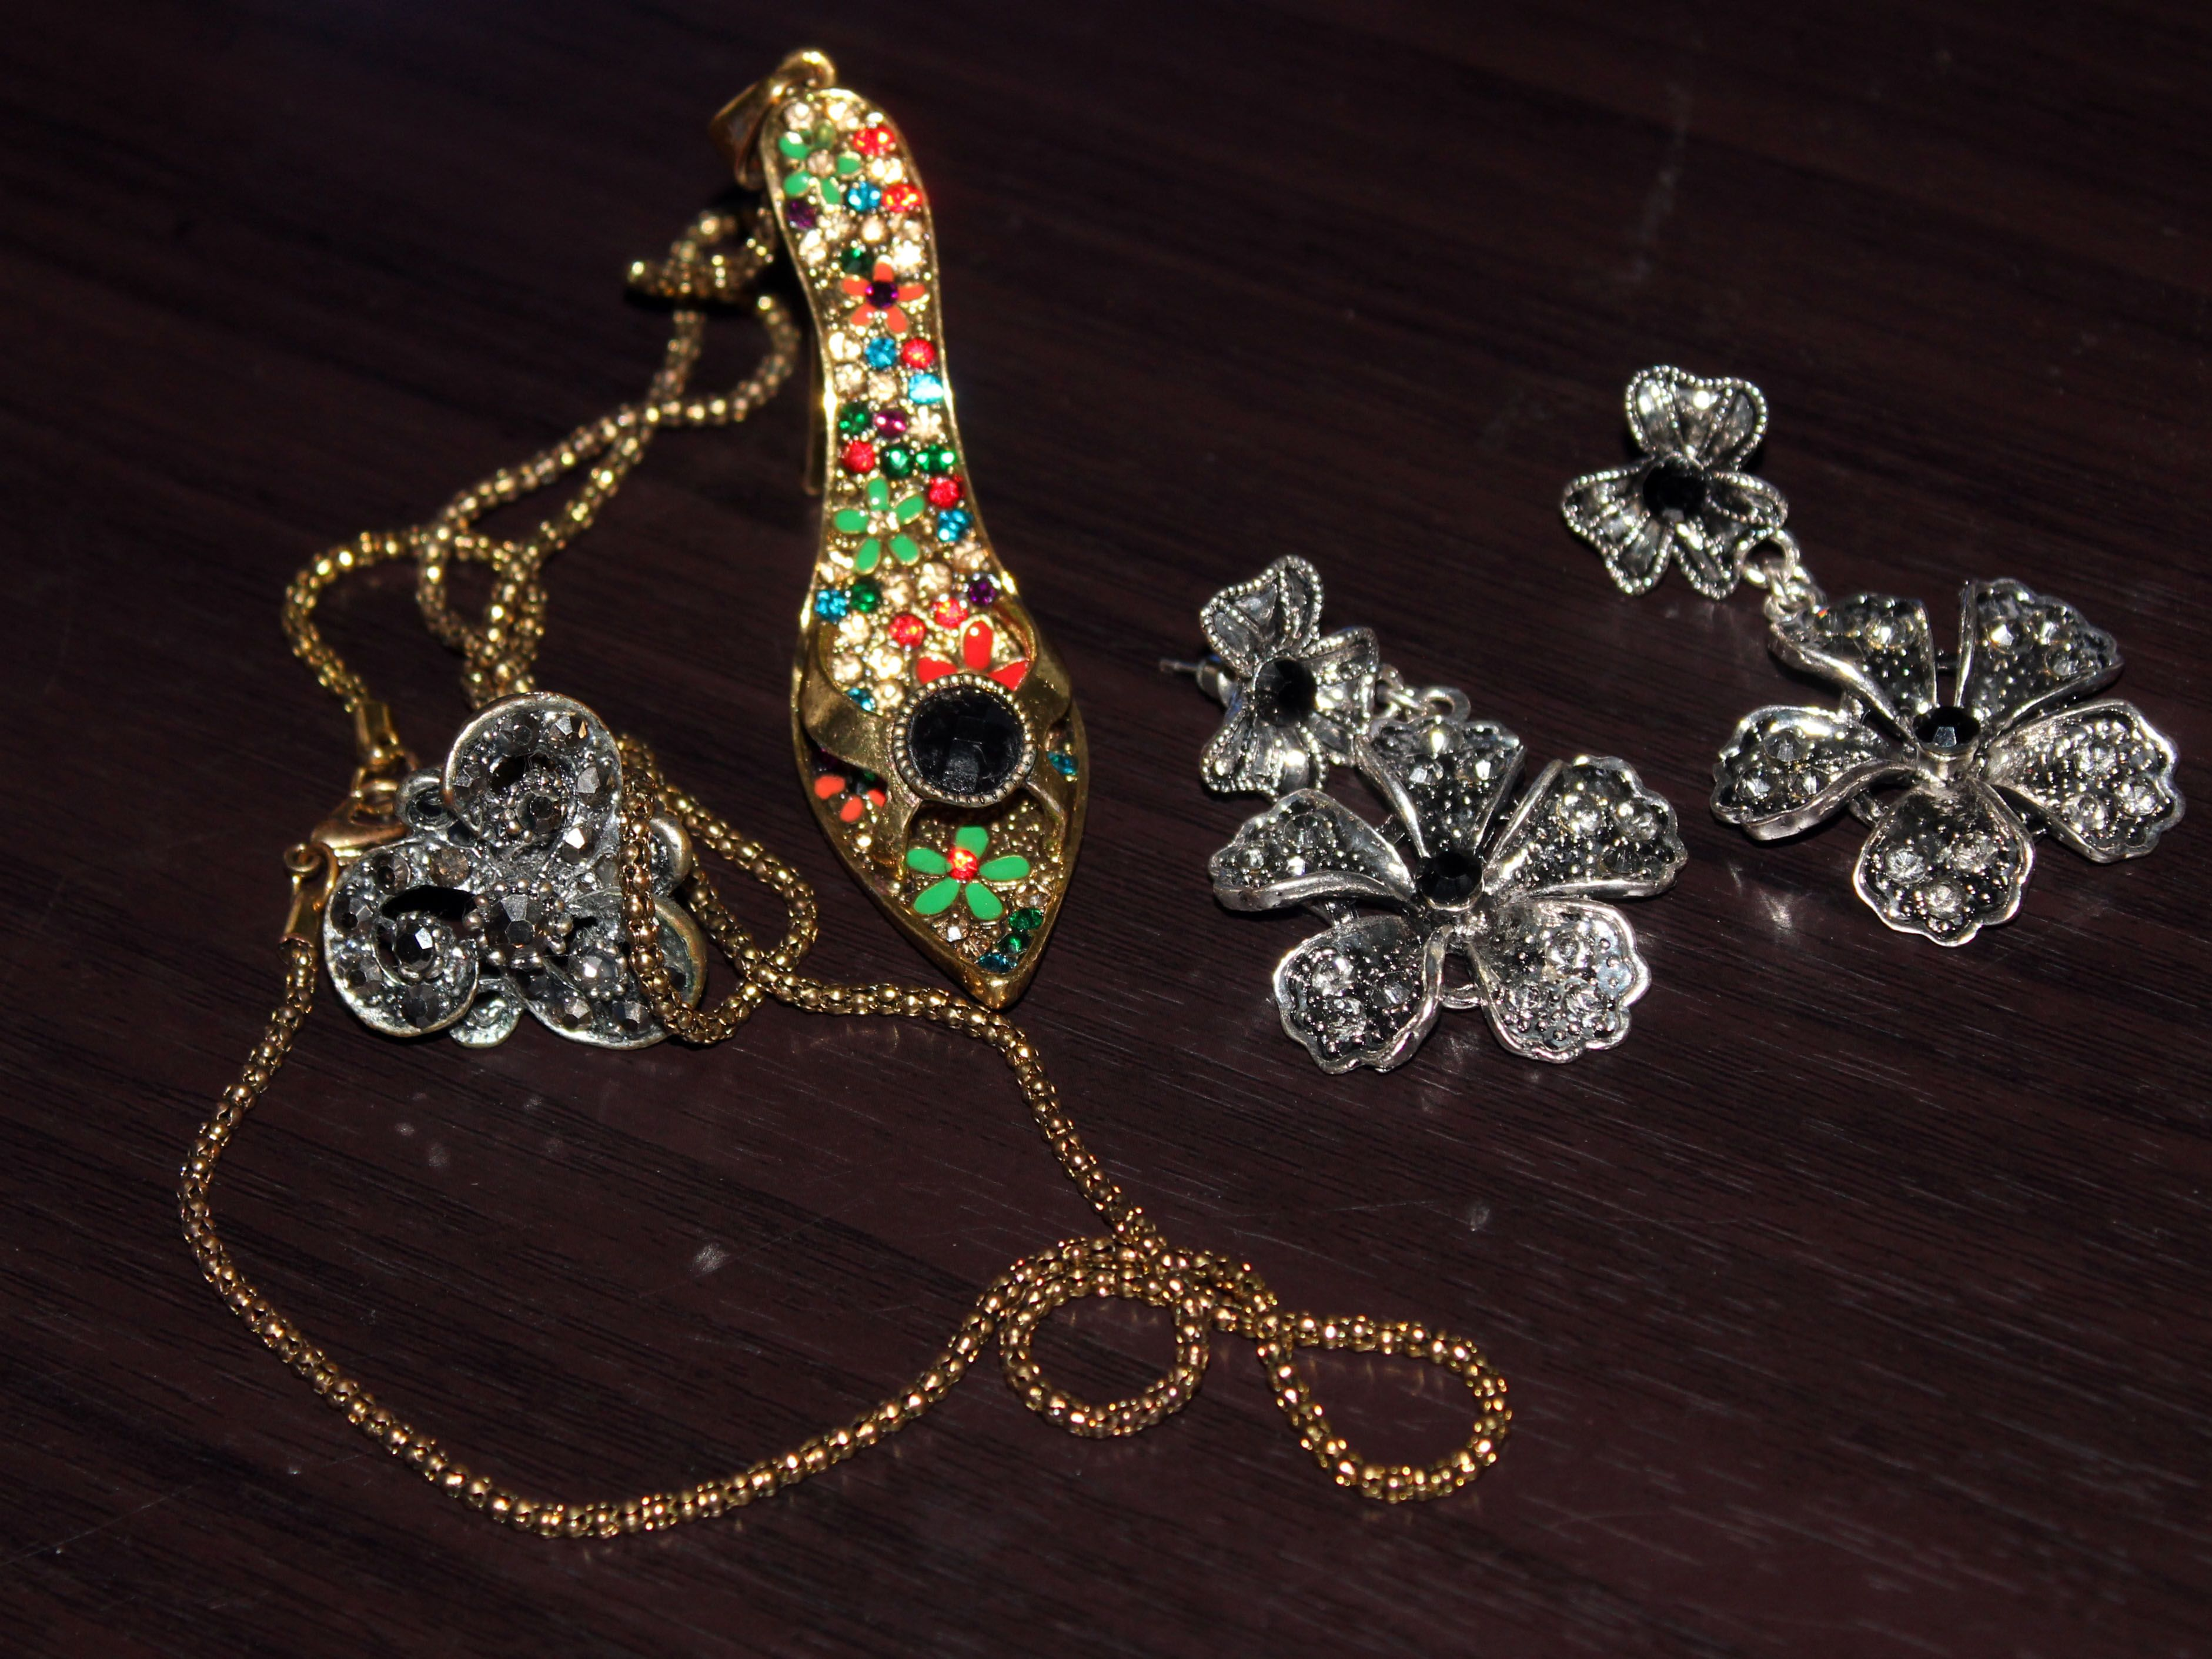 20++ Where to sell vintage costume jewelry ideas in 2021